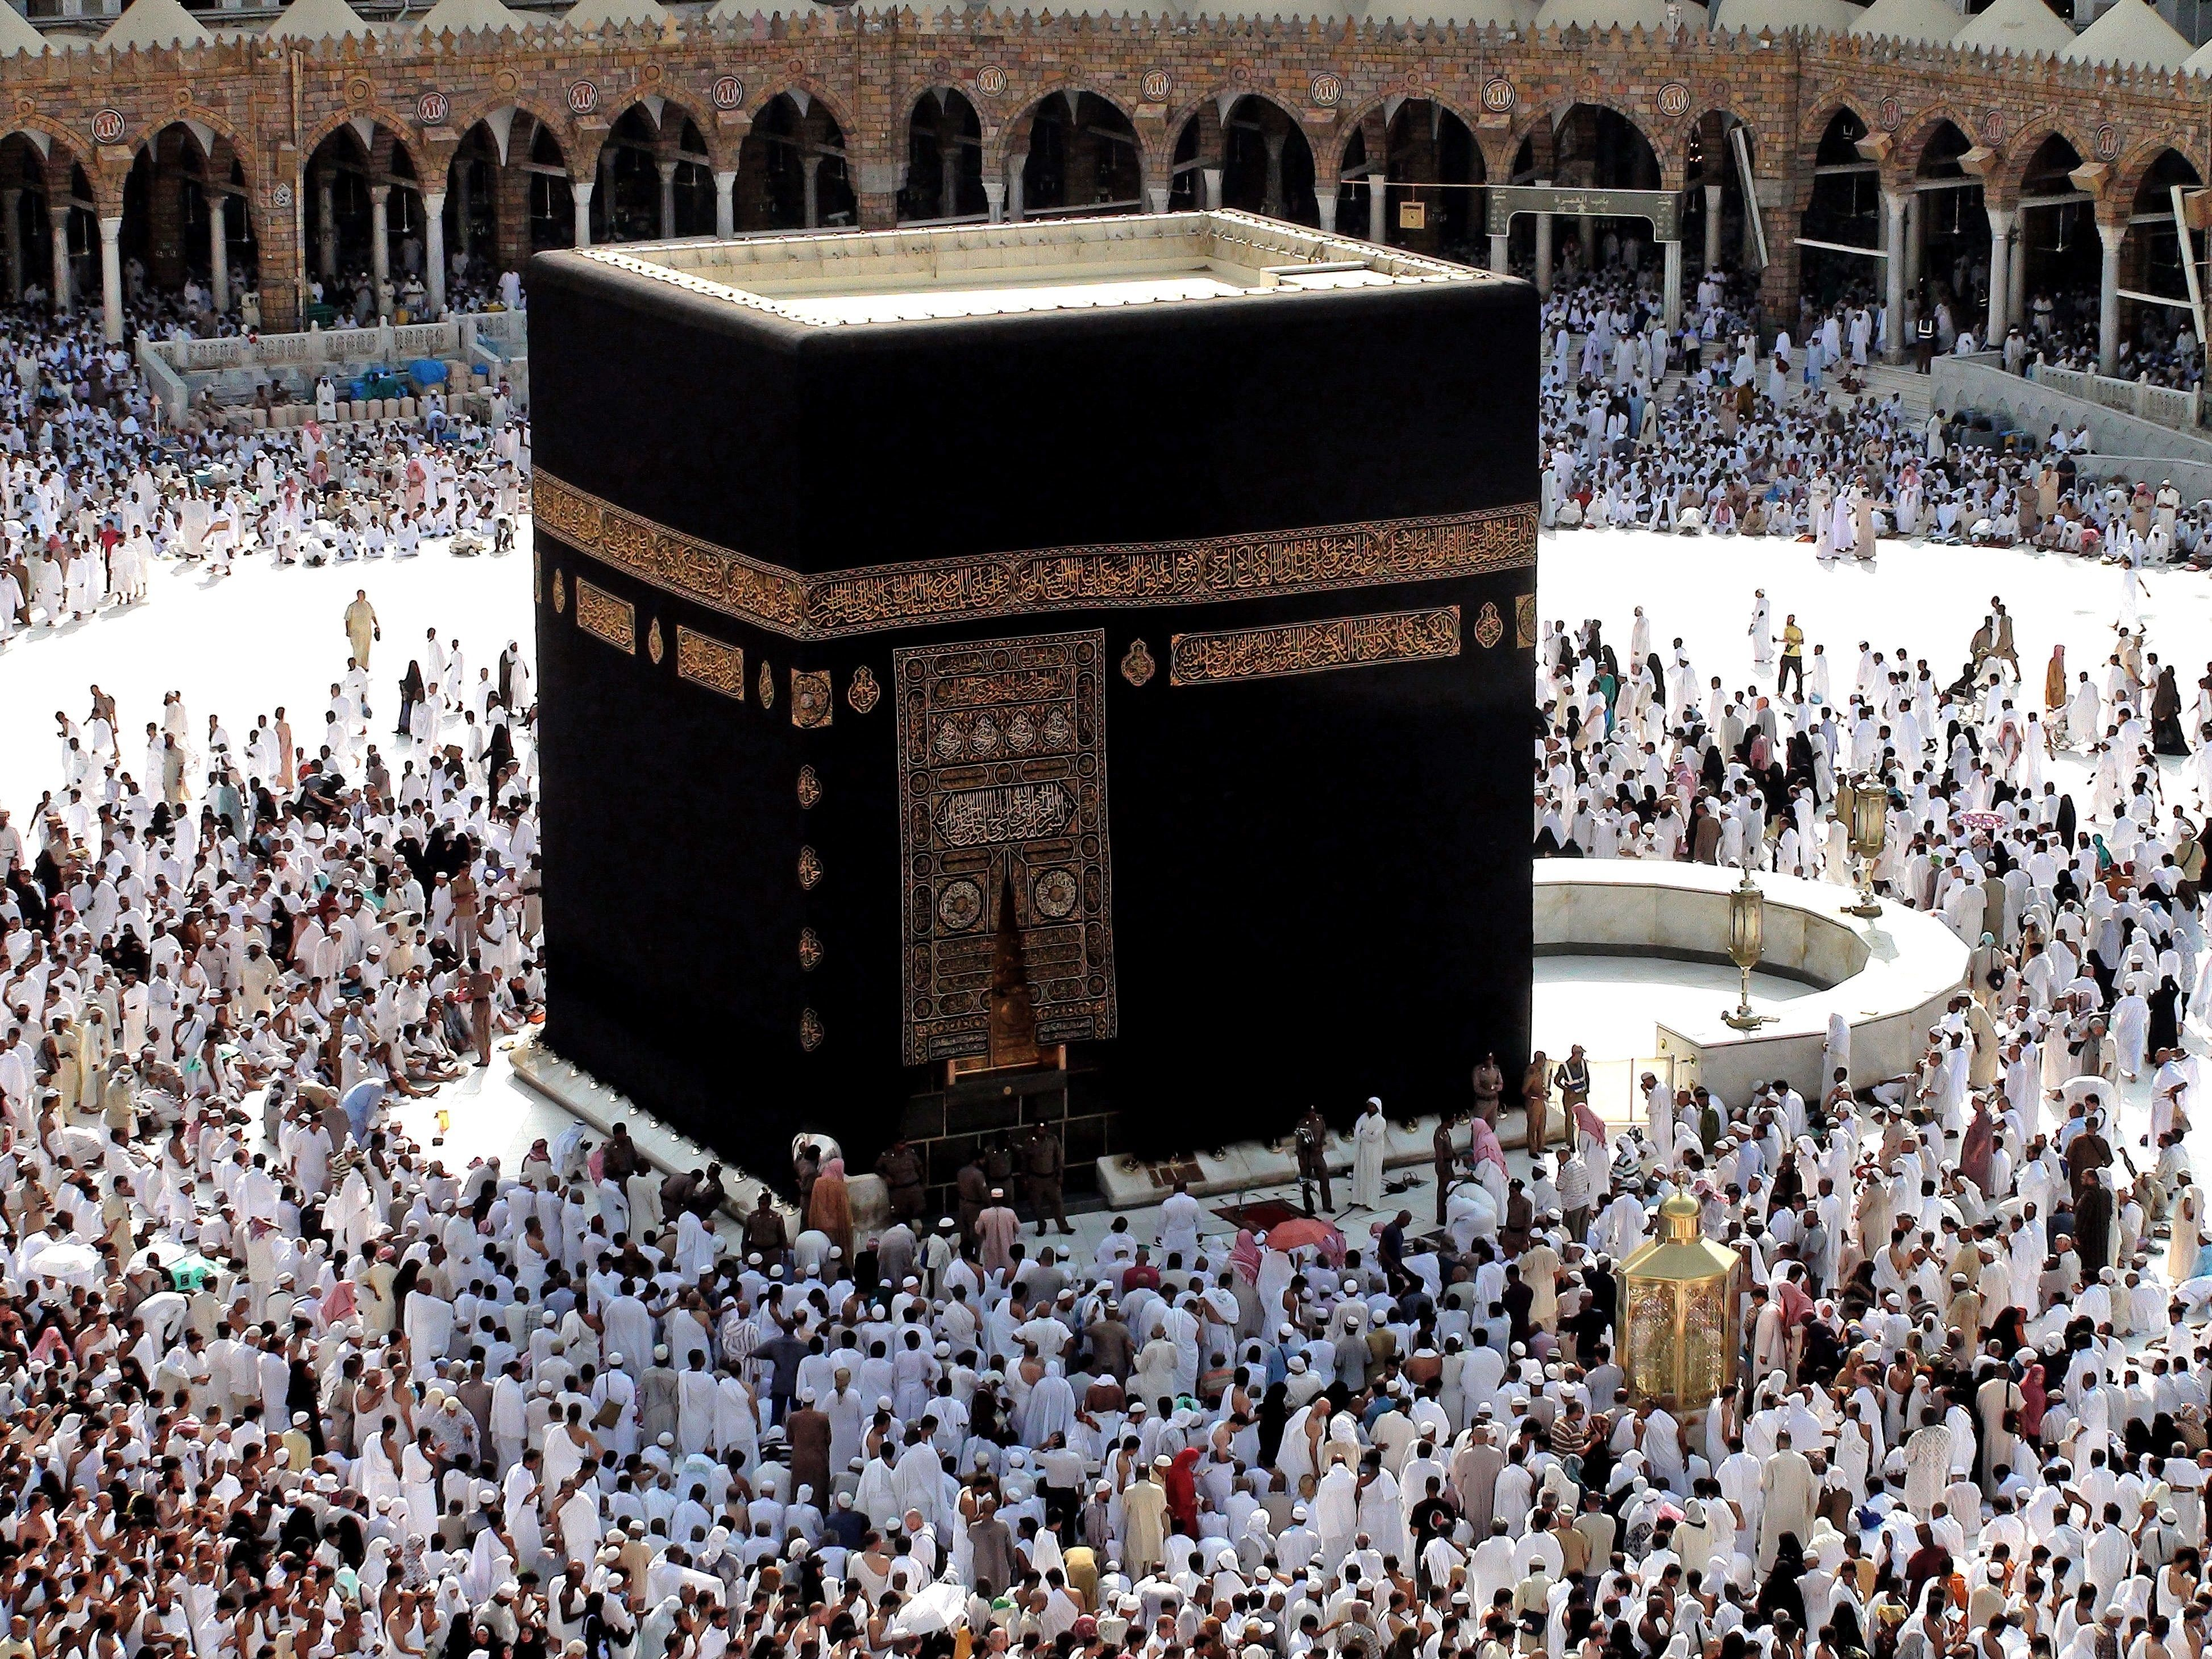 Mecca ramadan en diabetes